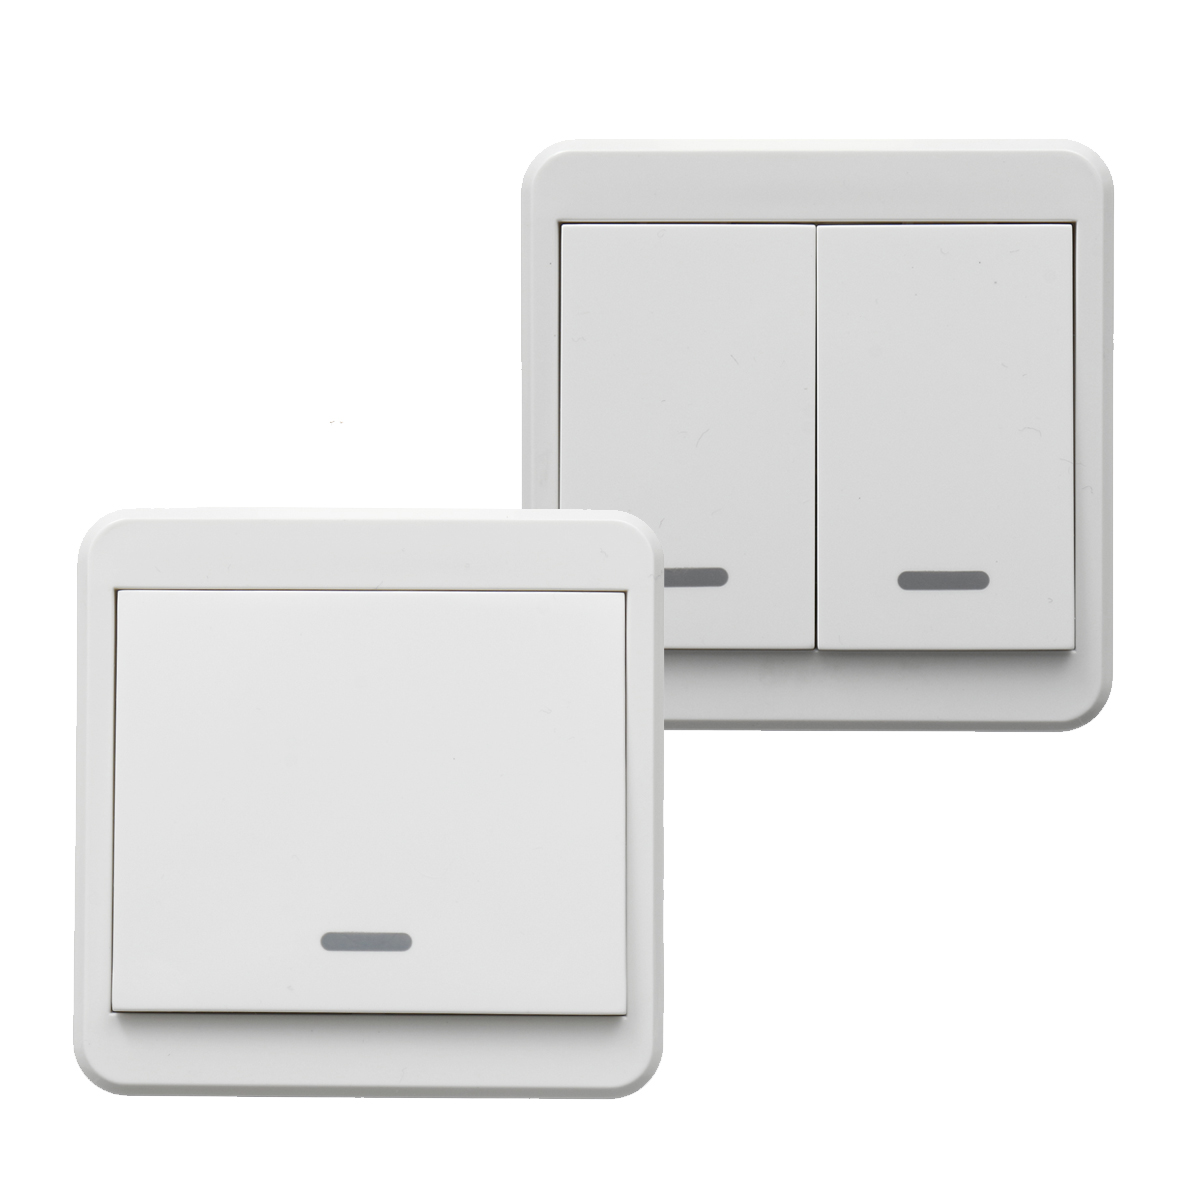 1 2 Way Wireless Switch Smart Wireless Wall Light Switch Lamp Remote Control Switch On Off Receiver Walmart Com Walmart Com